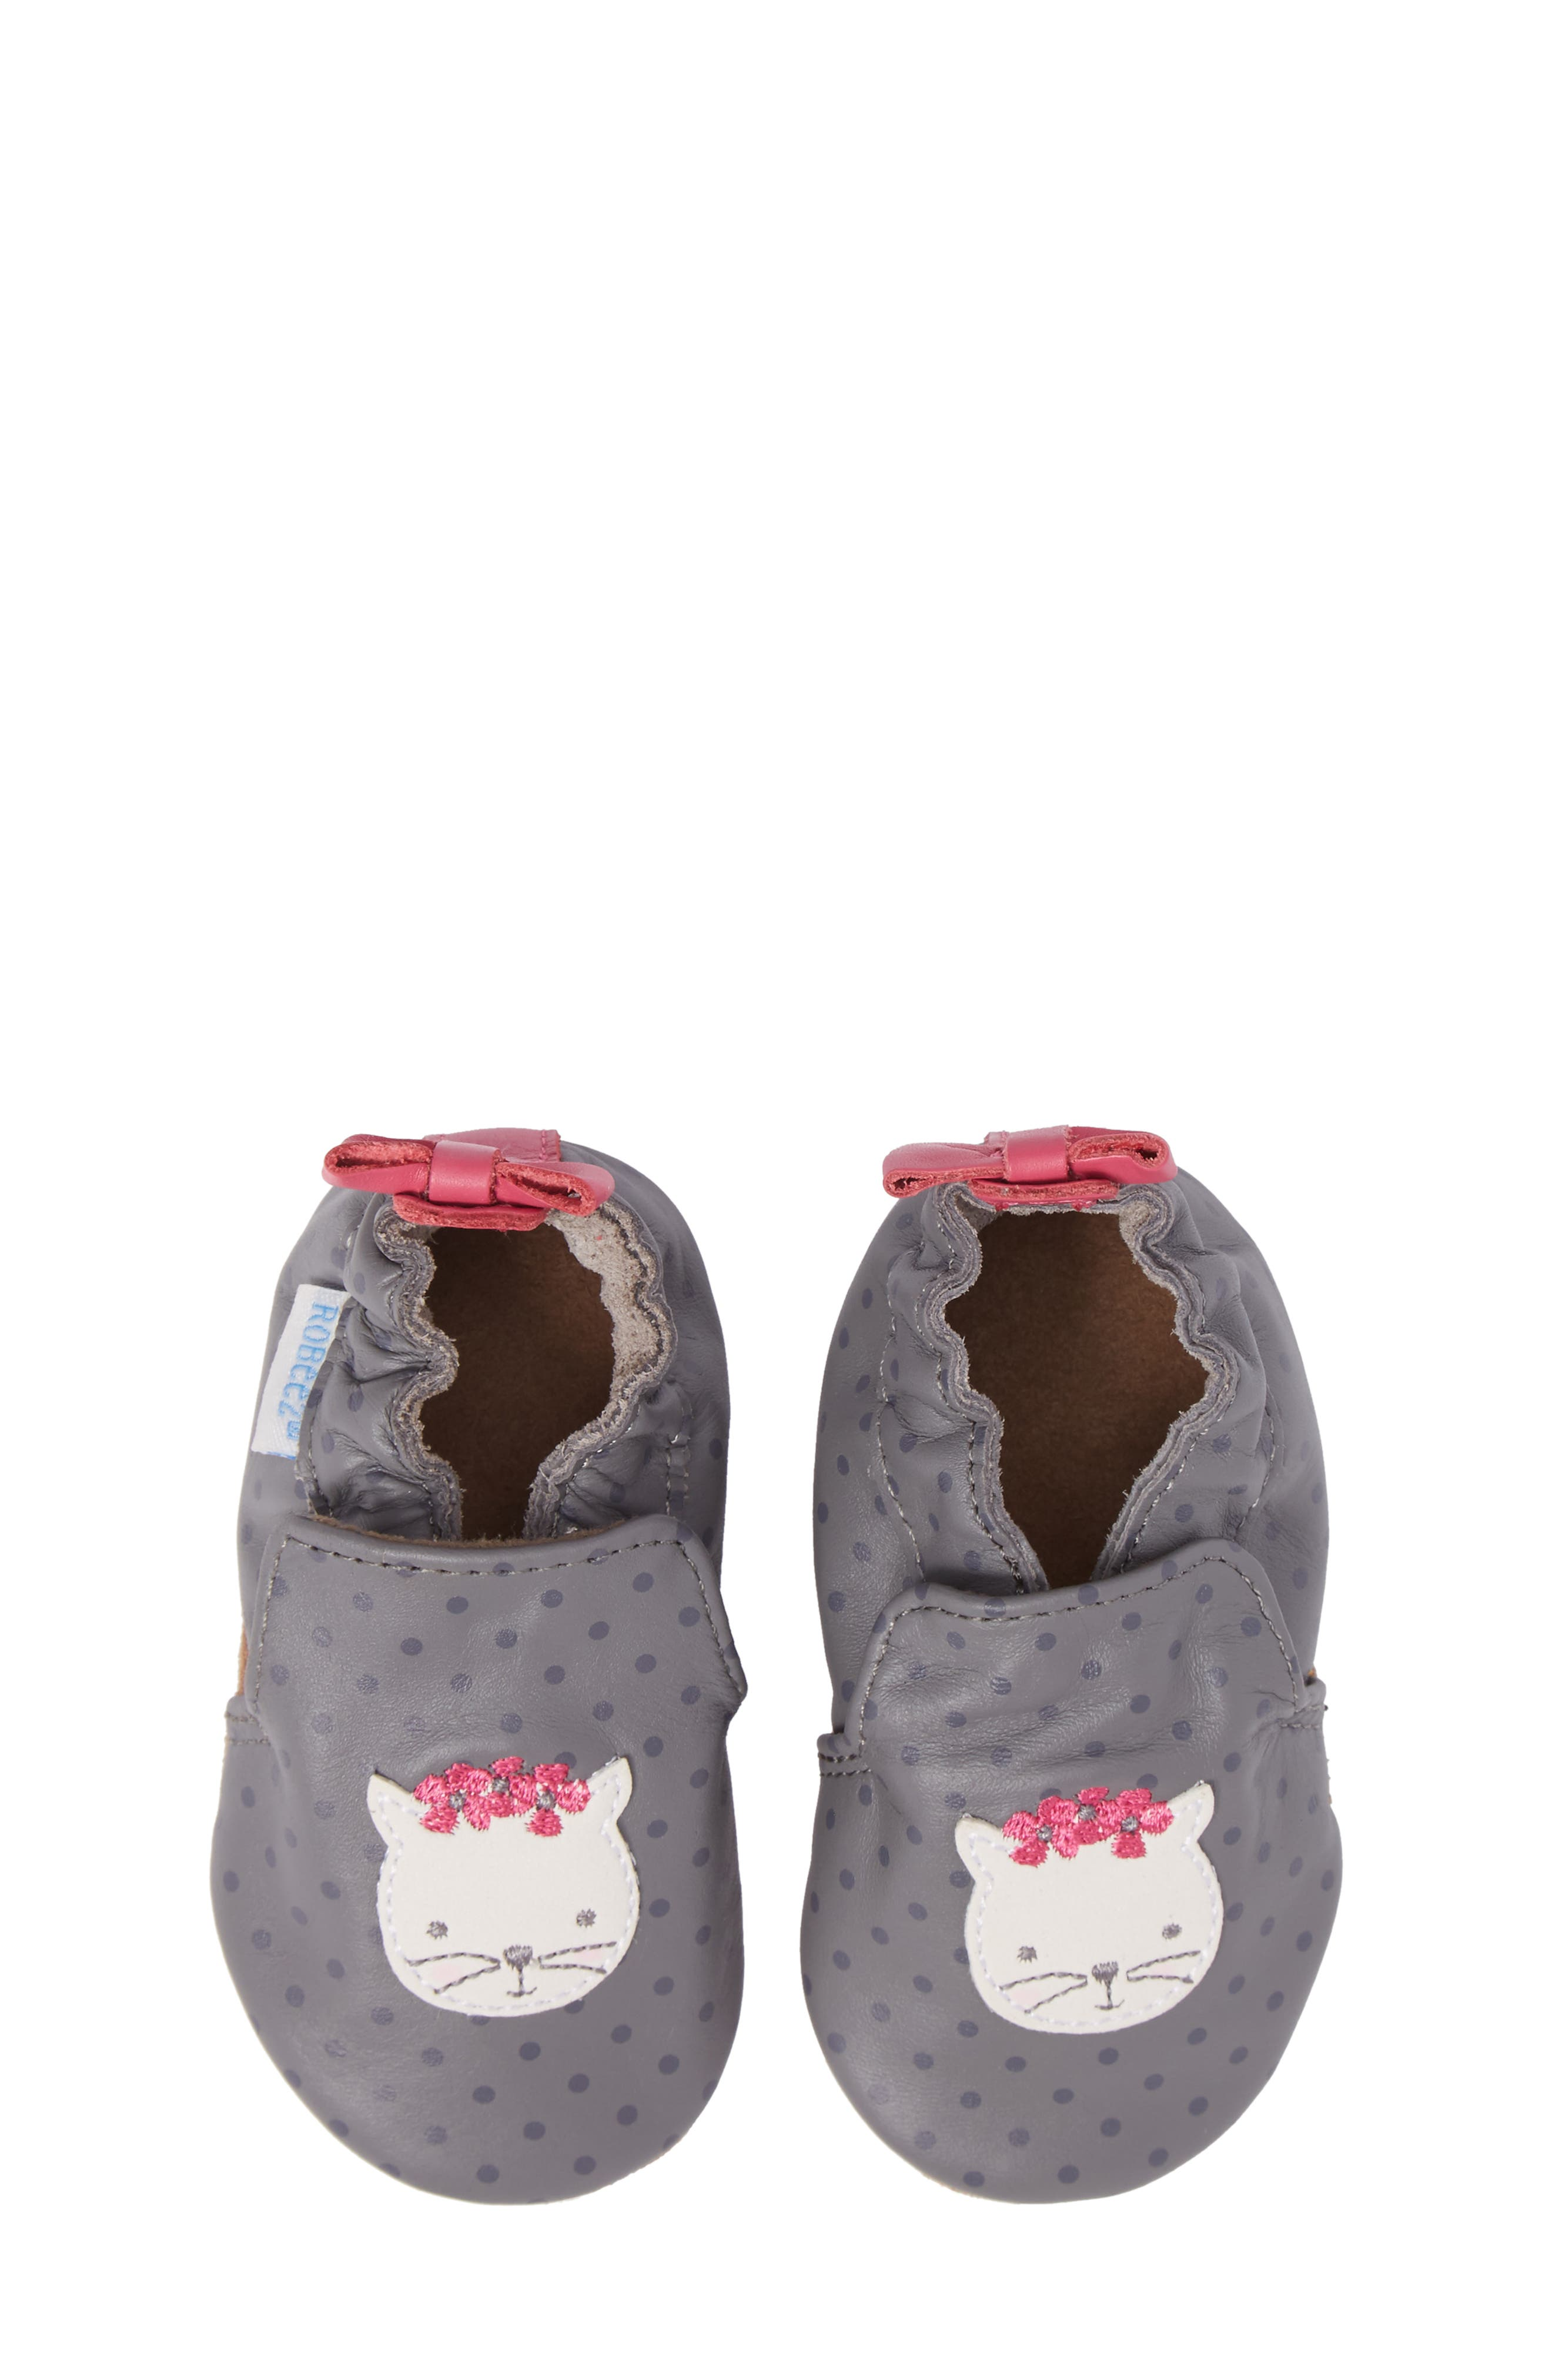 Miss Kitty Crib Shoe,                             Alternate thumbnail 5, color,                             GREY